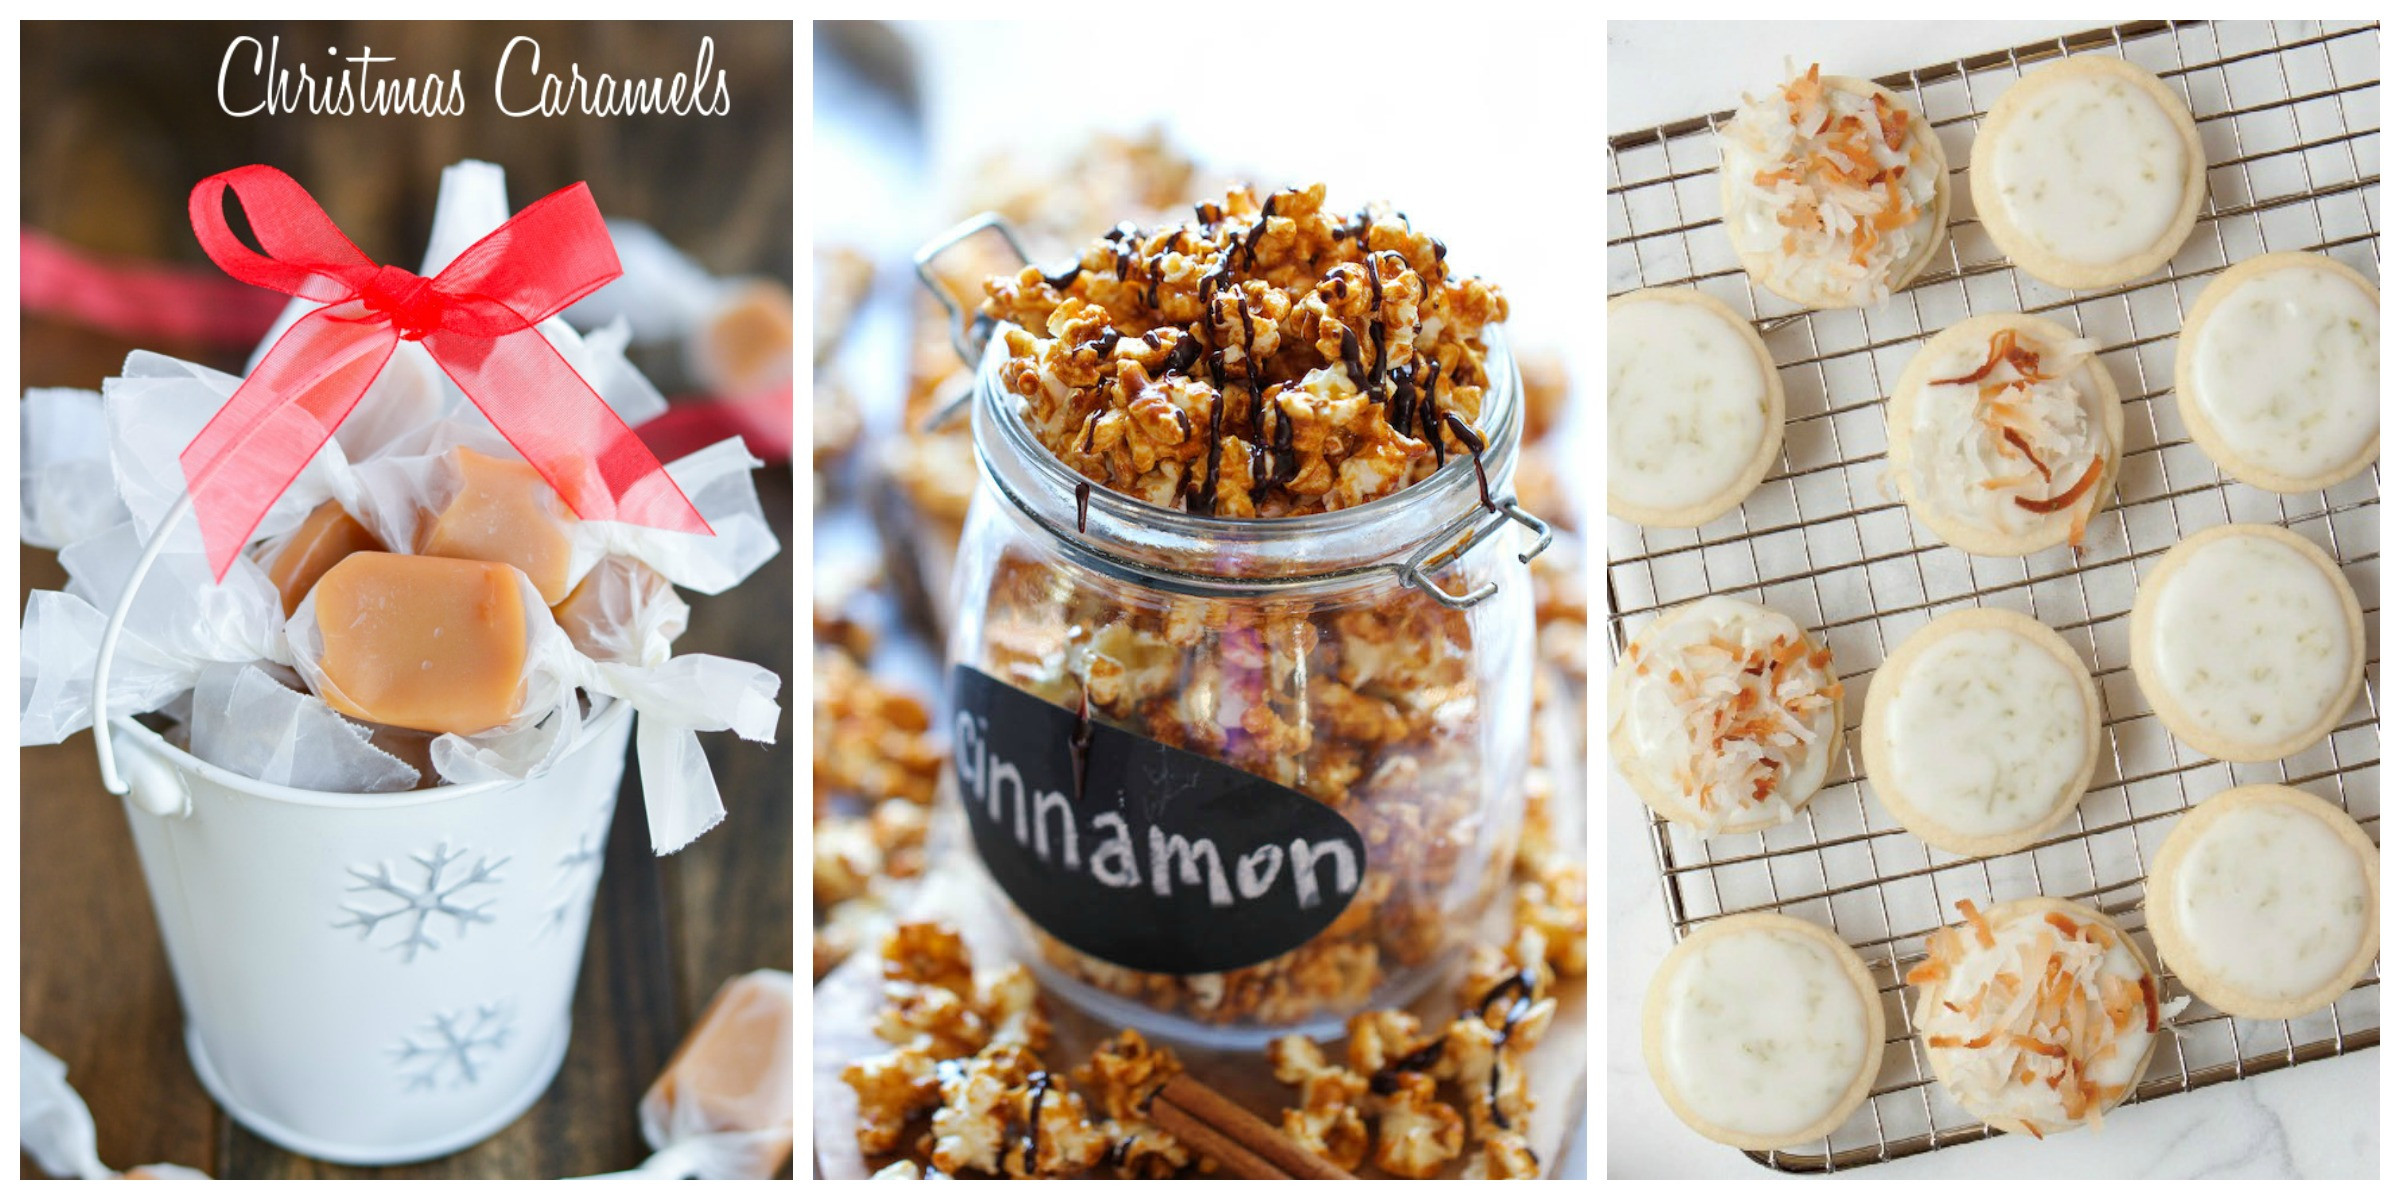 Best ideas about Holiday Food Gift Ideas . Save or Pin 35 Homemade Christmas Food Gifts Best Edible Holiday Now.